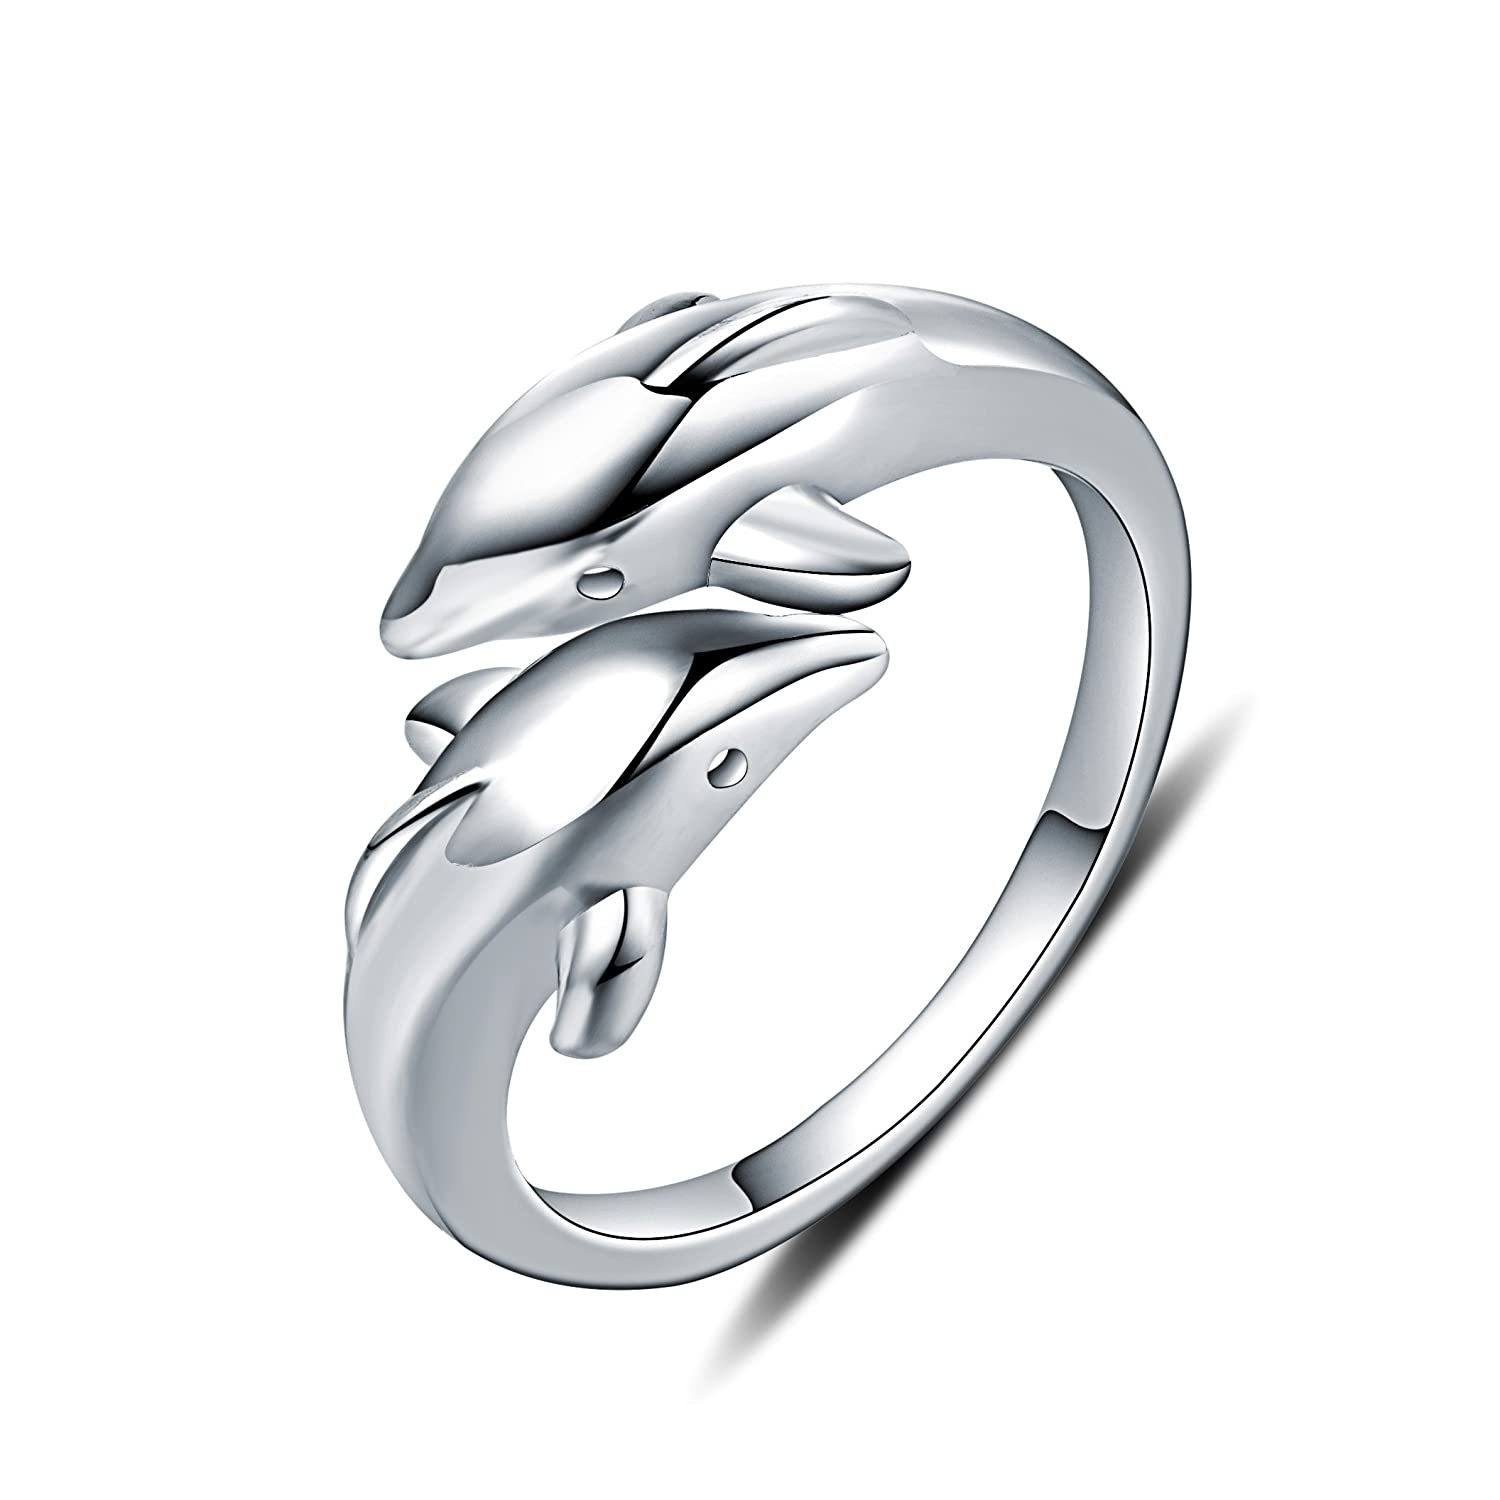 WHCREAT Dolphin 925 Sterling Silver Rings for Girls Women, Adjustable Open Ring SS-JZ-DNF0031